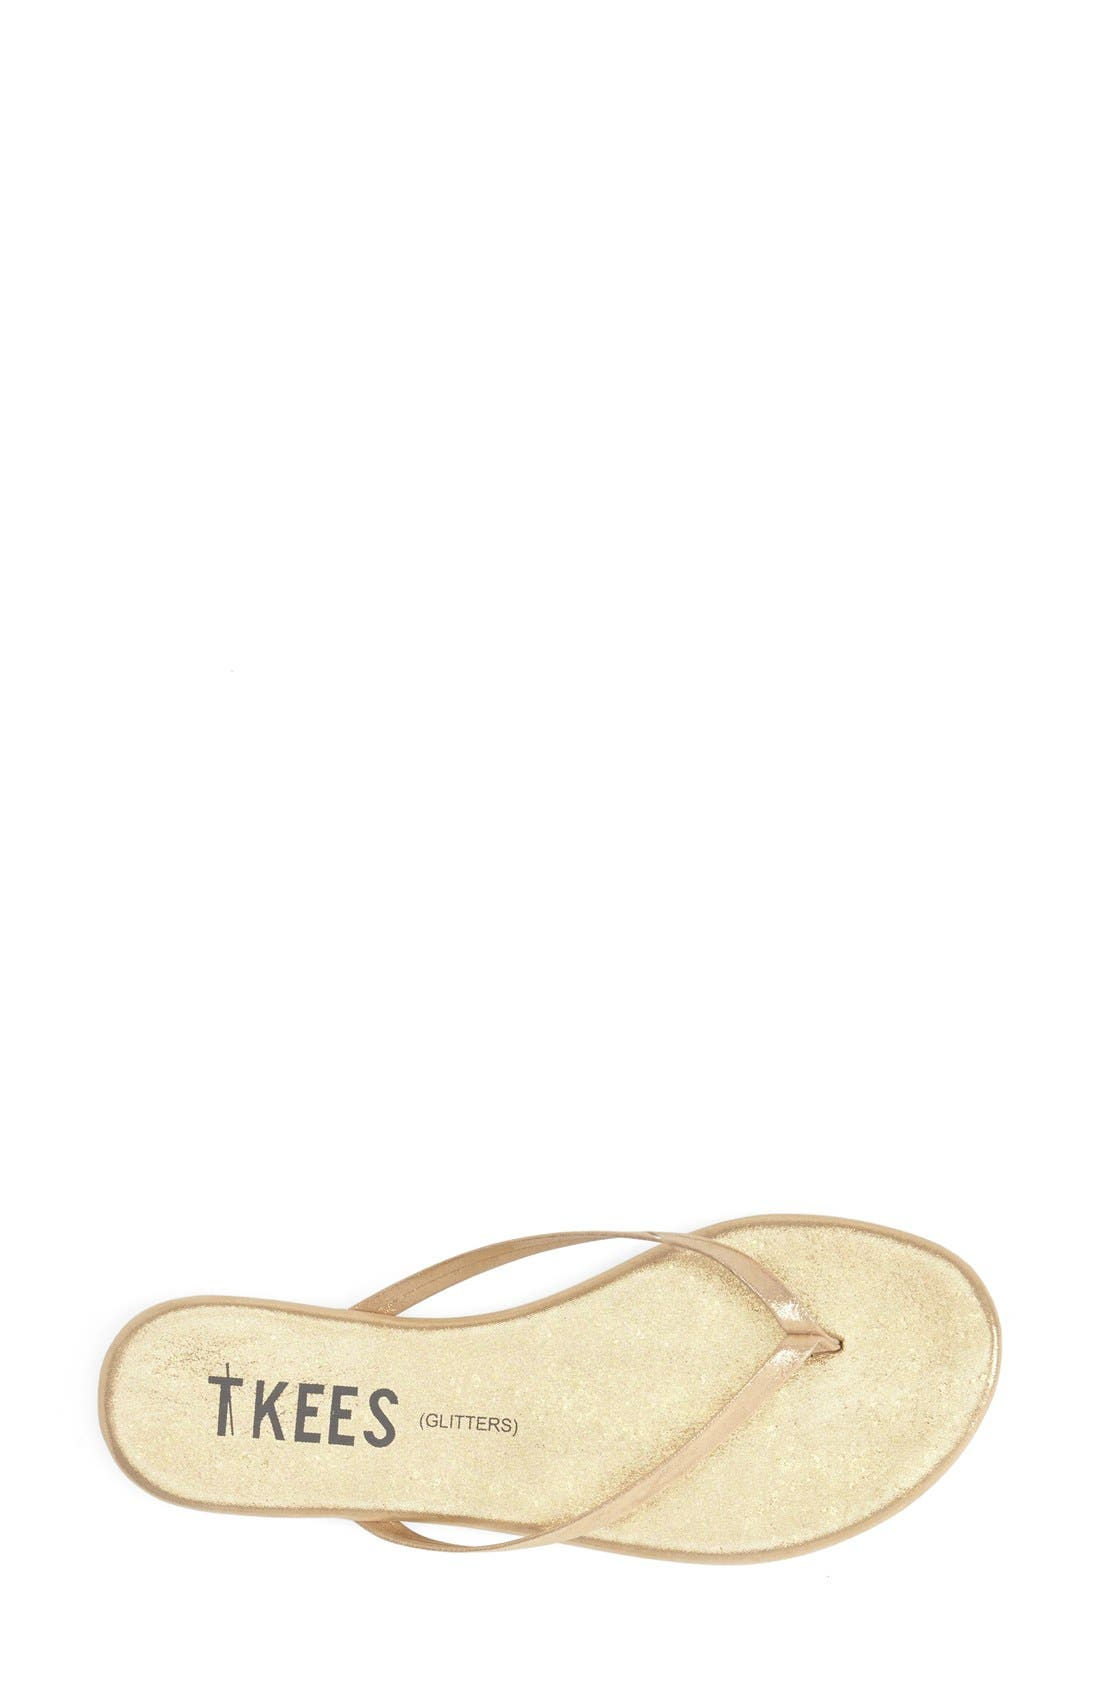 Alternate Image 3  - TKEES 'Glitters' Flip Flop (Women)